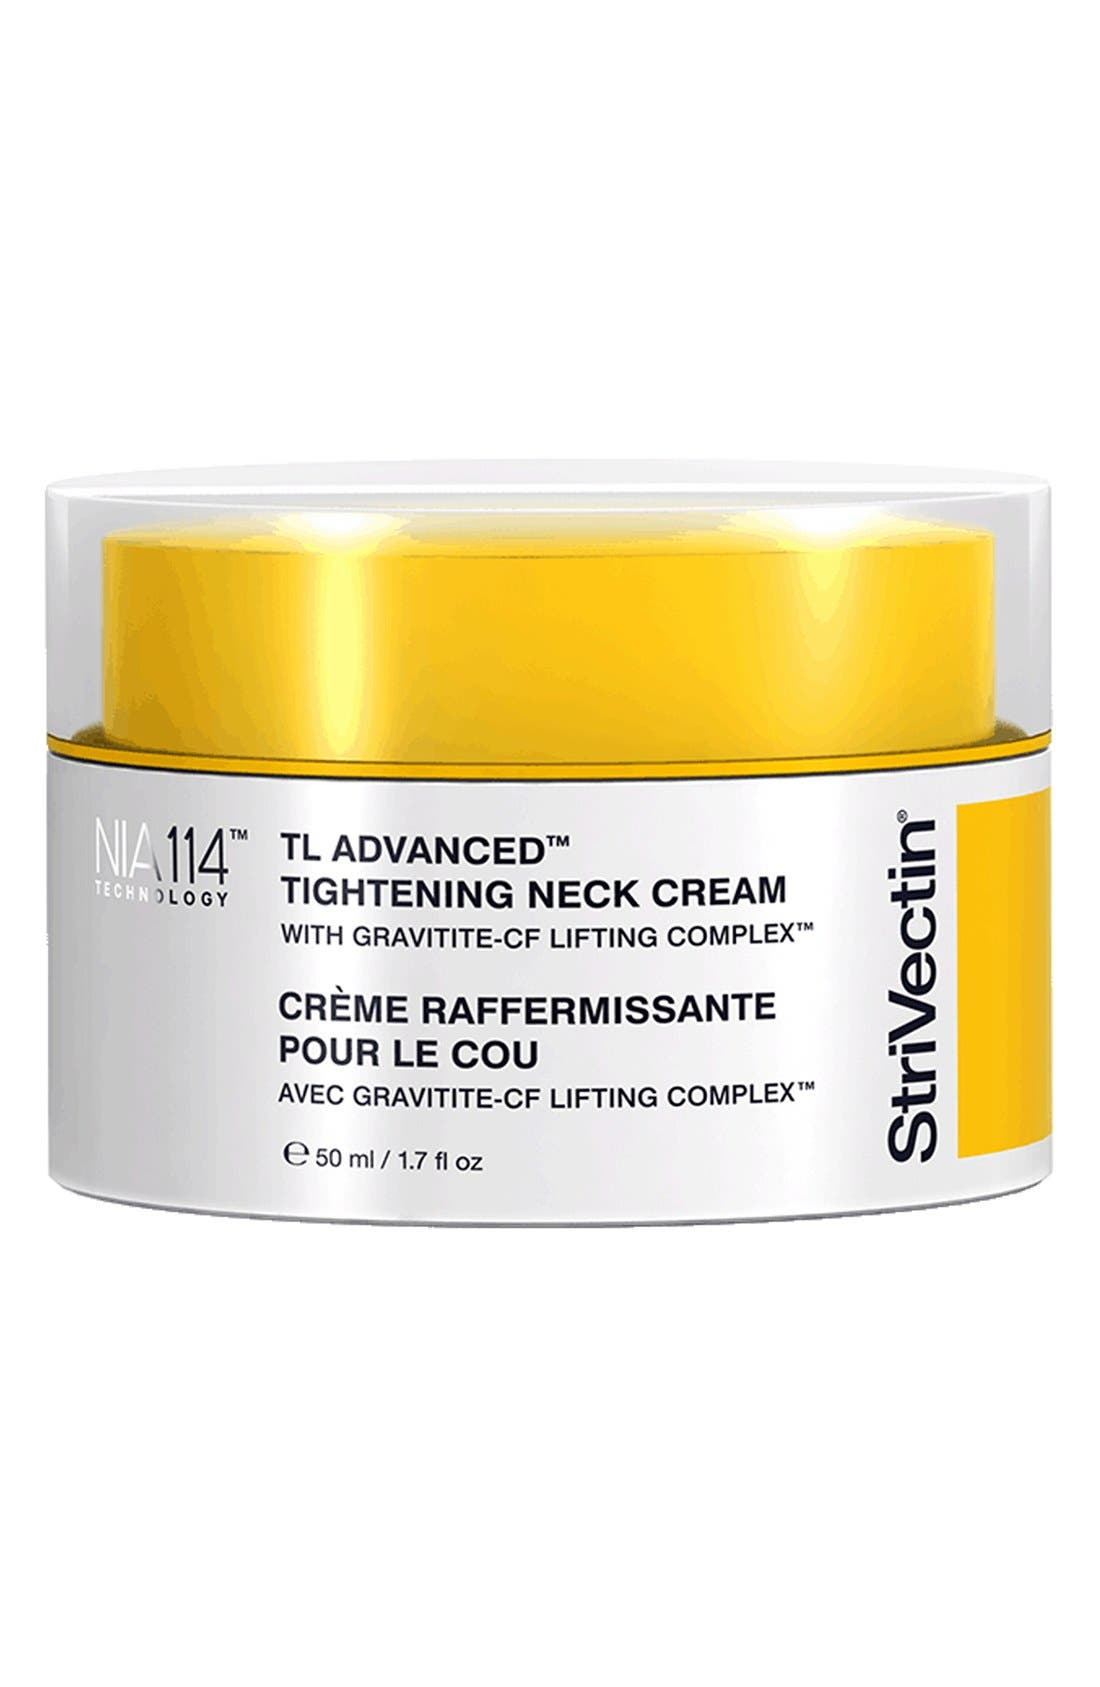 StriVectin-TL™ Advanced Tightening Neck Cream